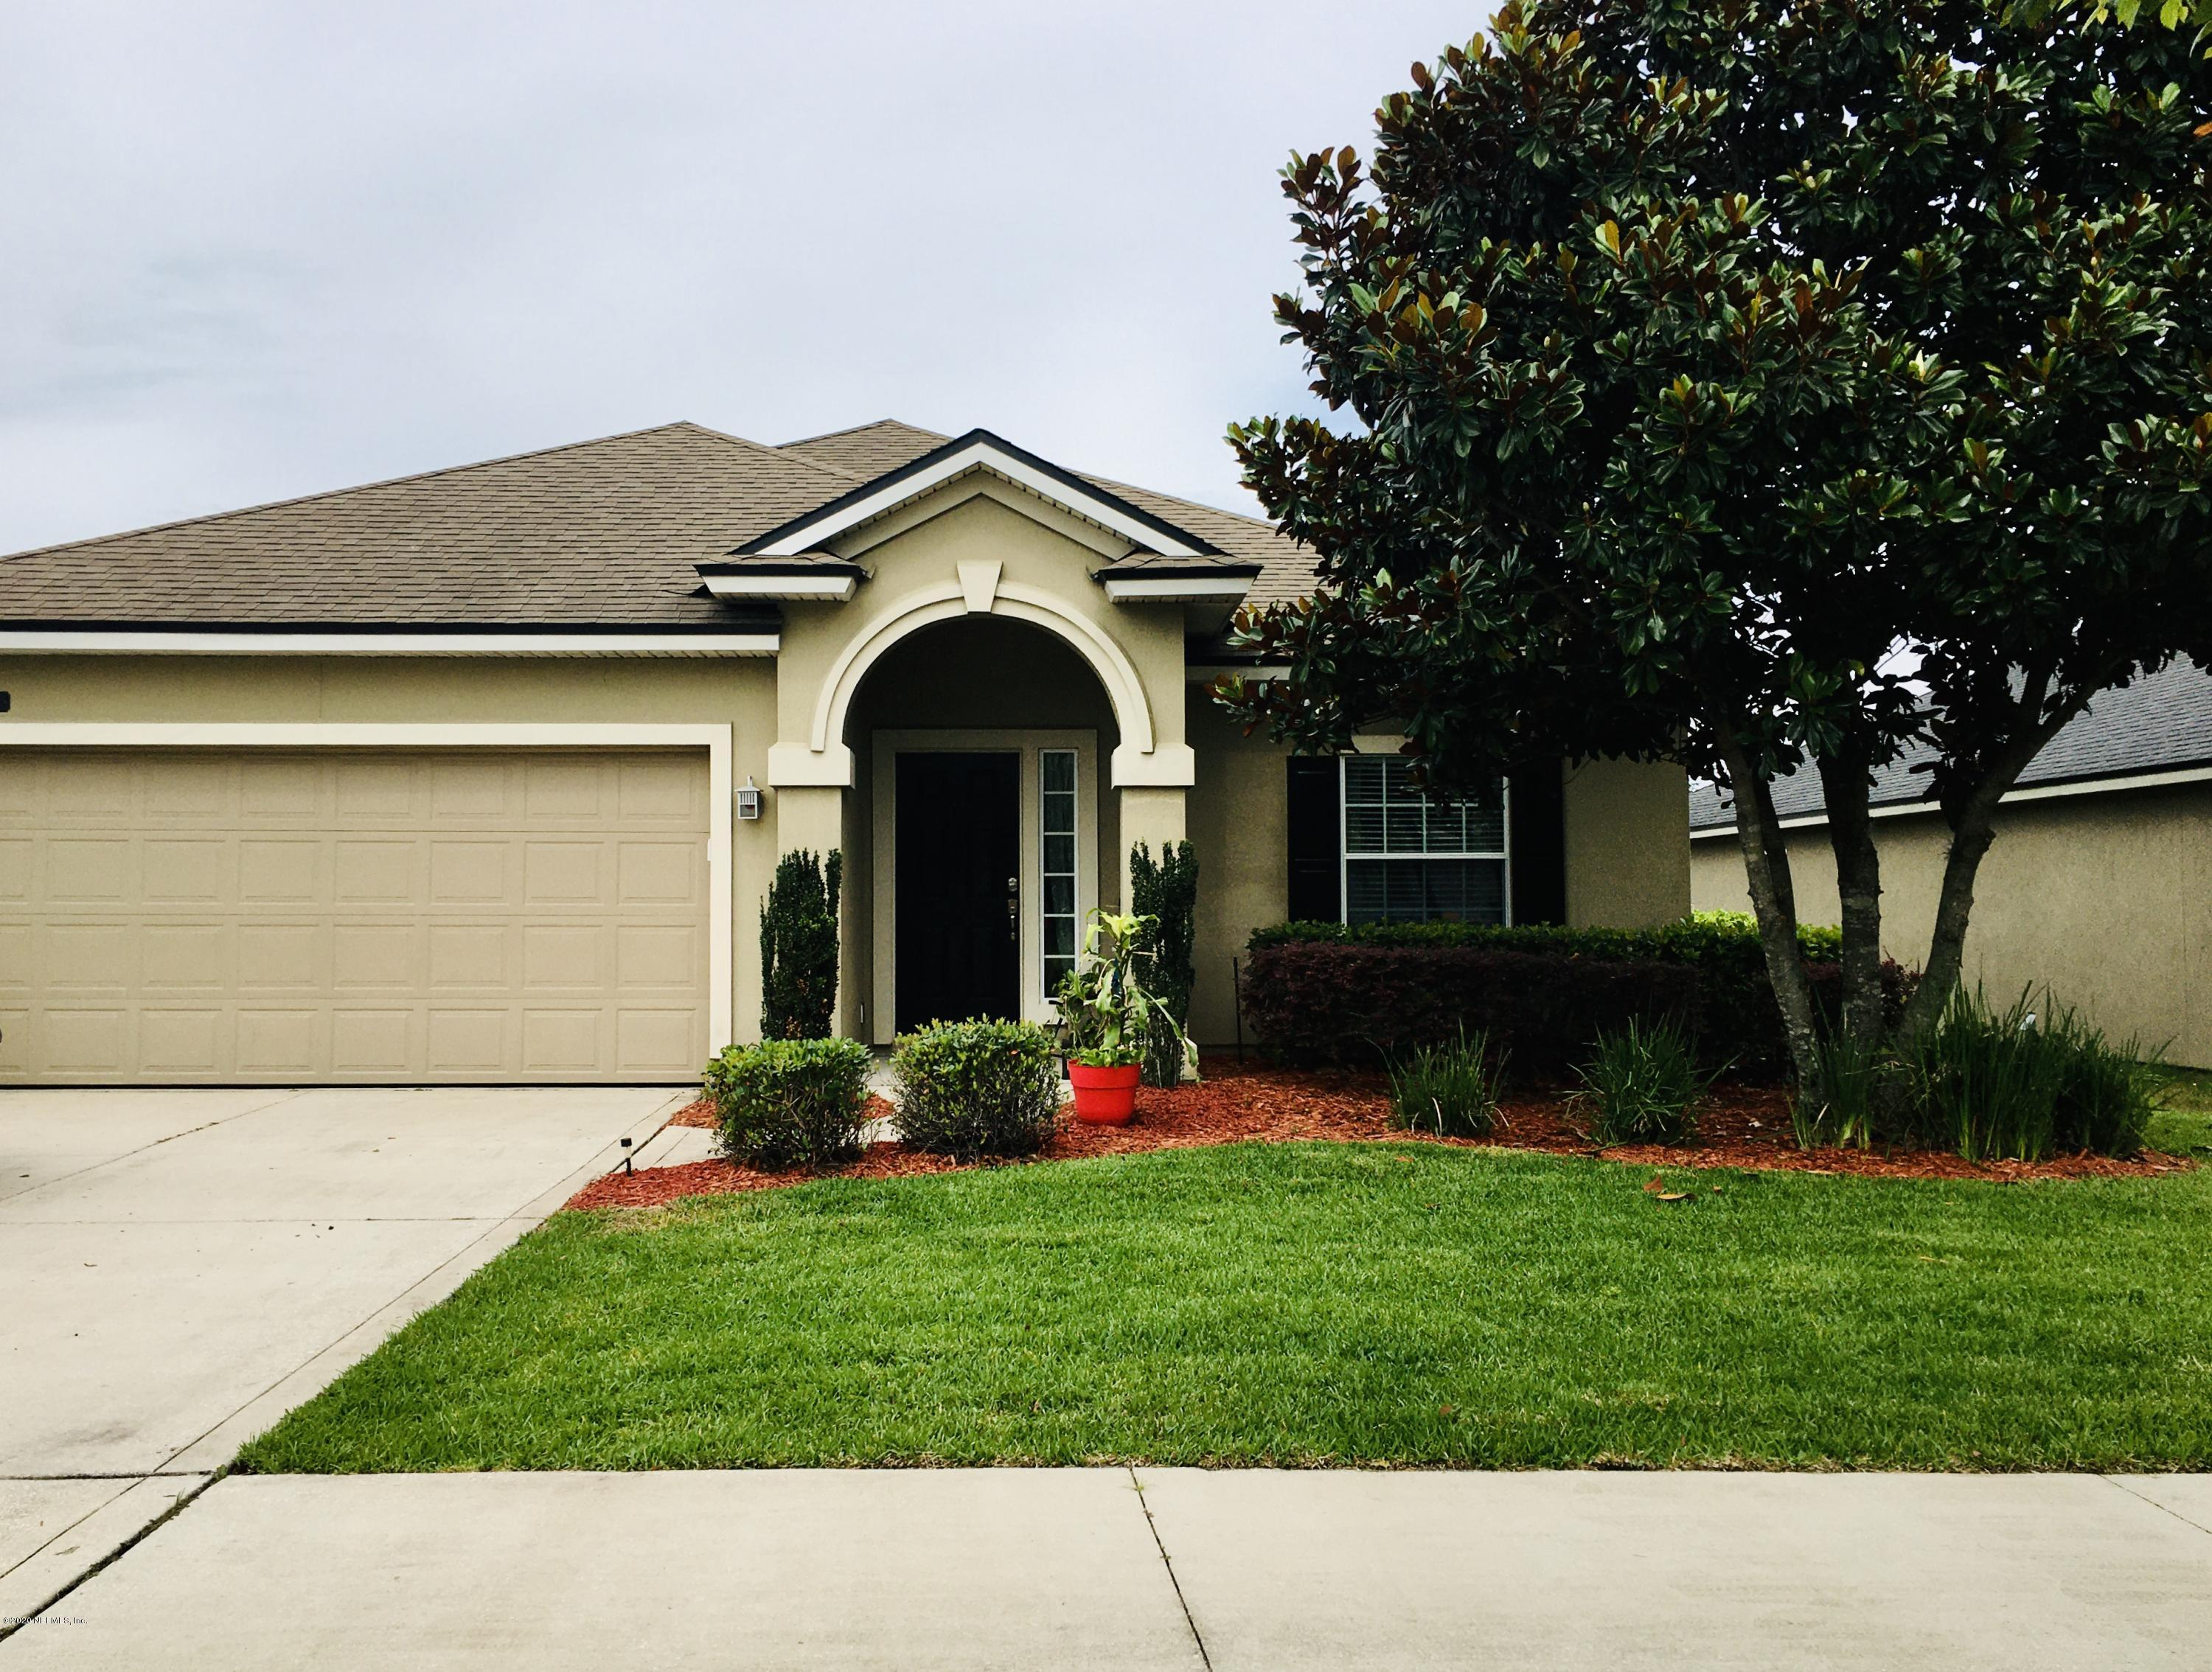 3174 HIDDEN MEADOWS, GREEN COVE SPRINGS, FLORIDA 32043, 4 Bedrooms Bedrooms, ,2 BathroomsBathrooms,Residential,For sale,HIDDEN MEADOWS,1057292